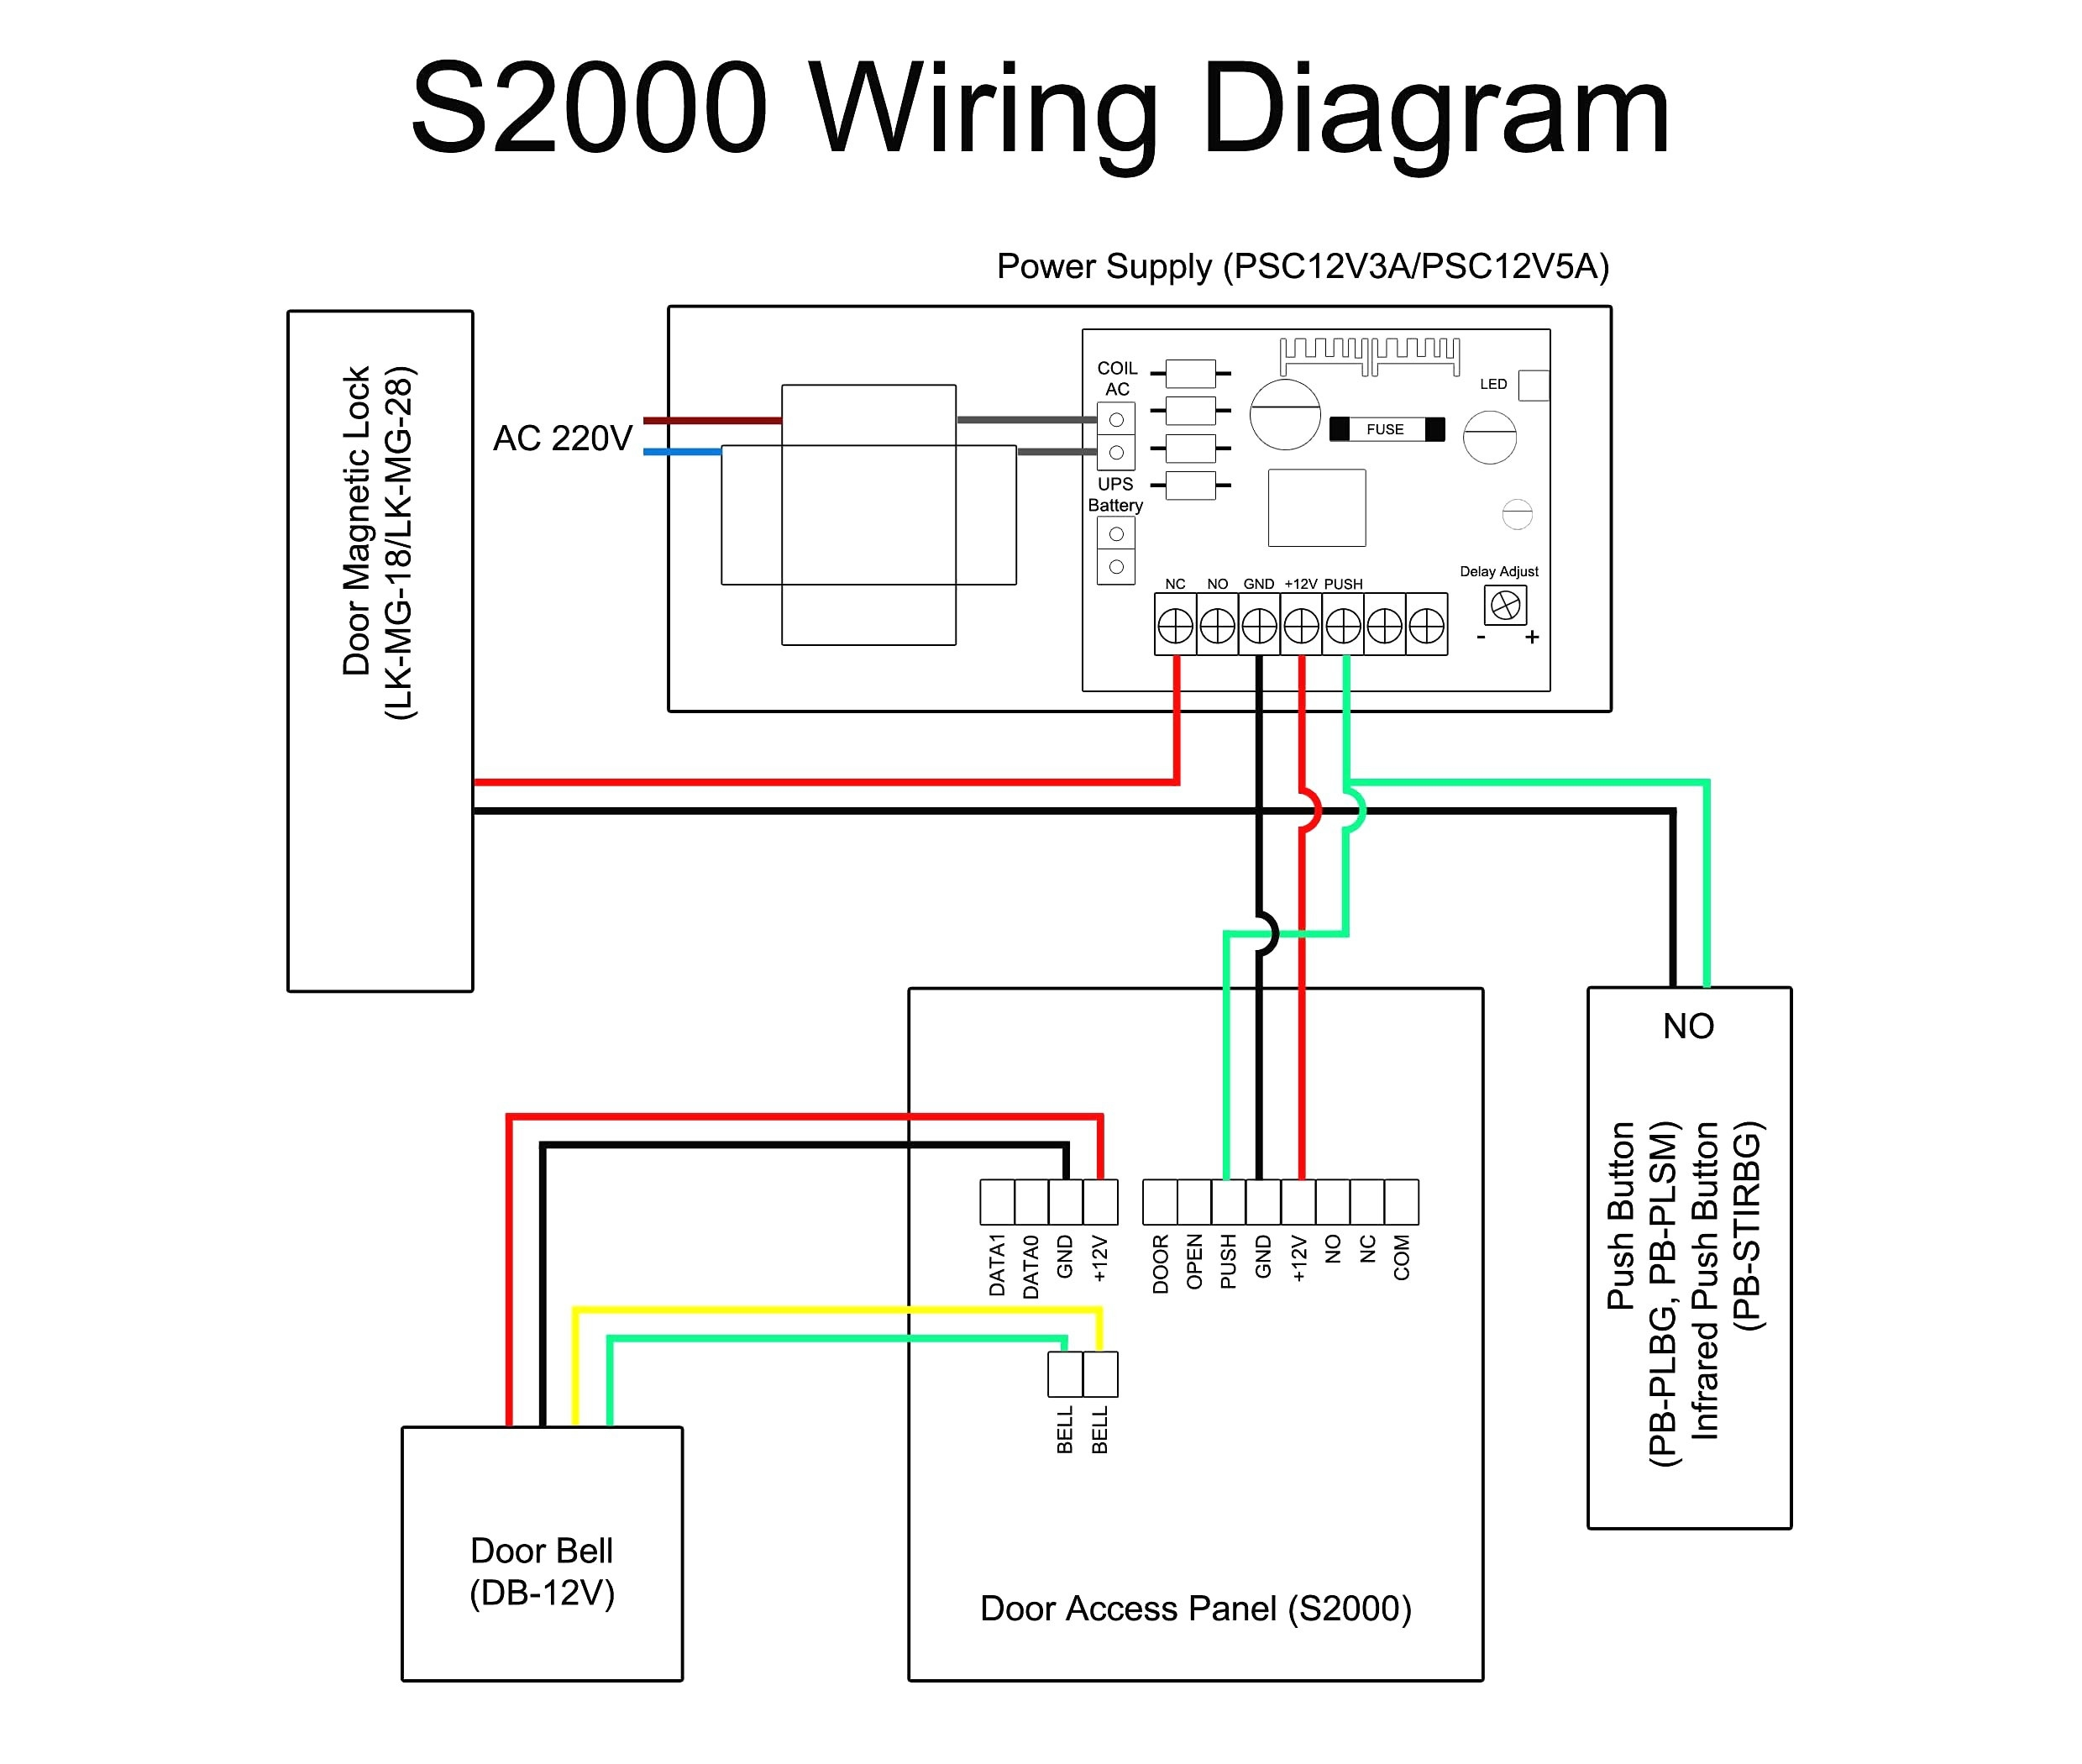 electrical wiring diagrams video camera wiring diagram features electrical wiring diagrams videos wiring diagram technic electrical wiring diagrams video camera